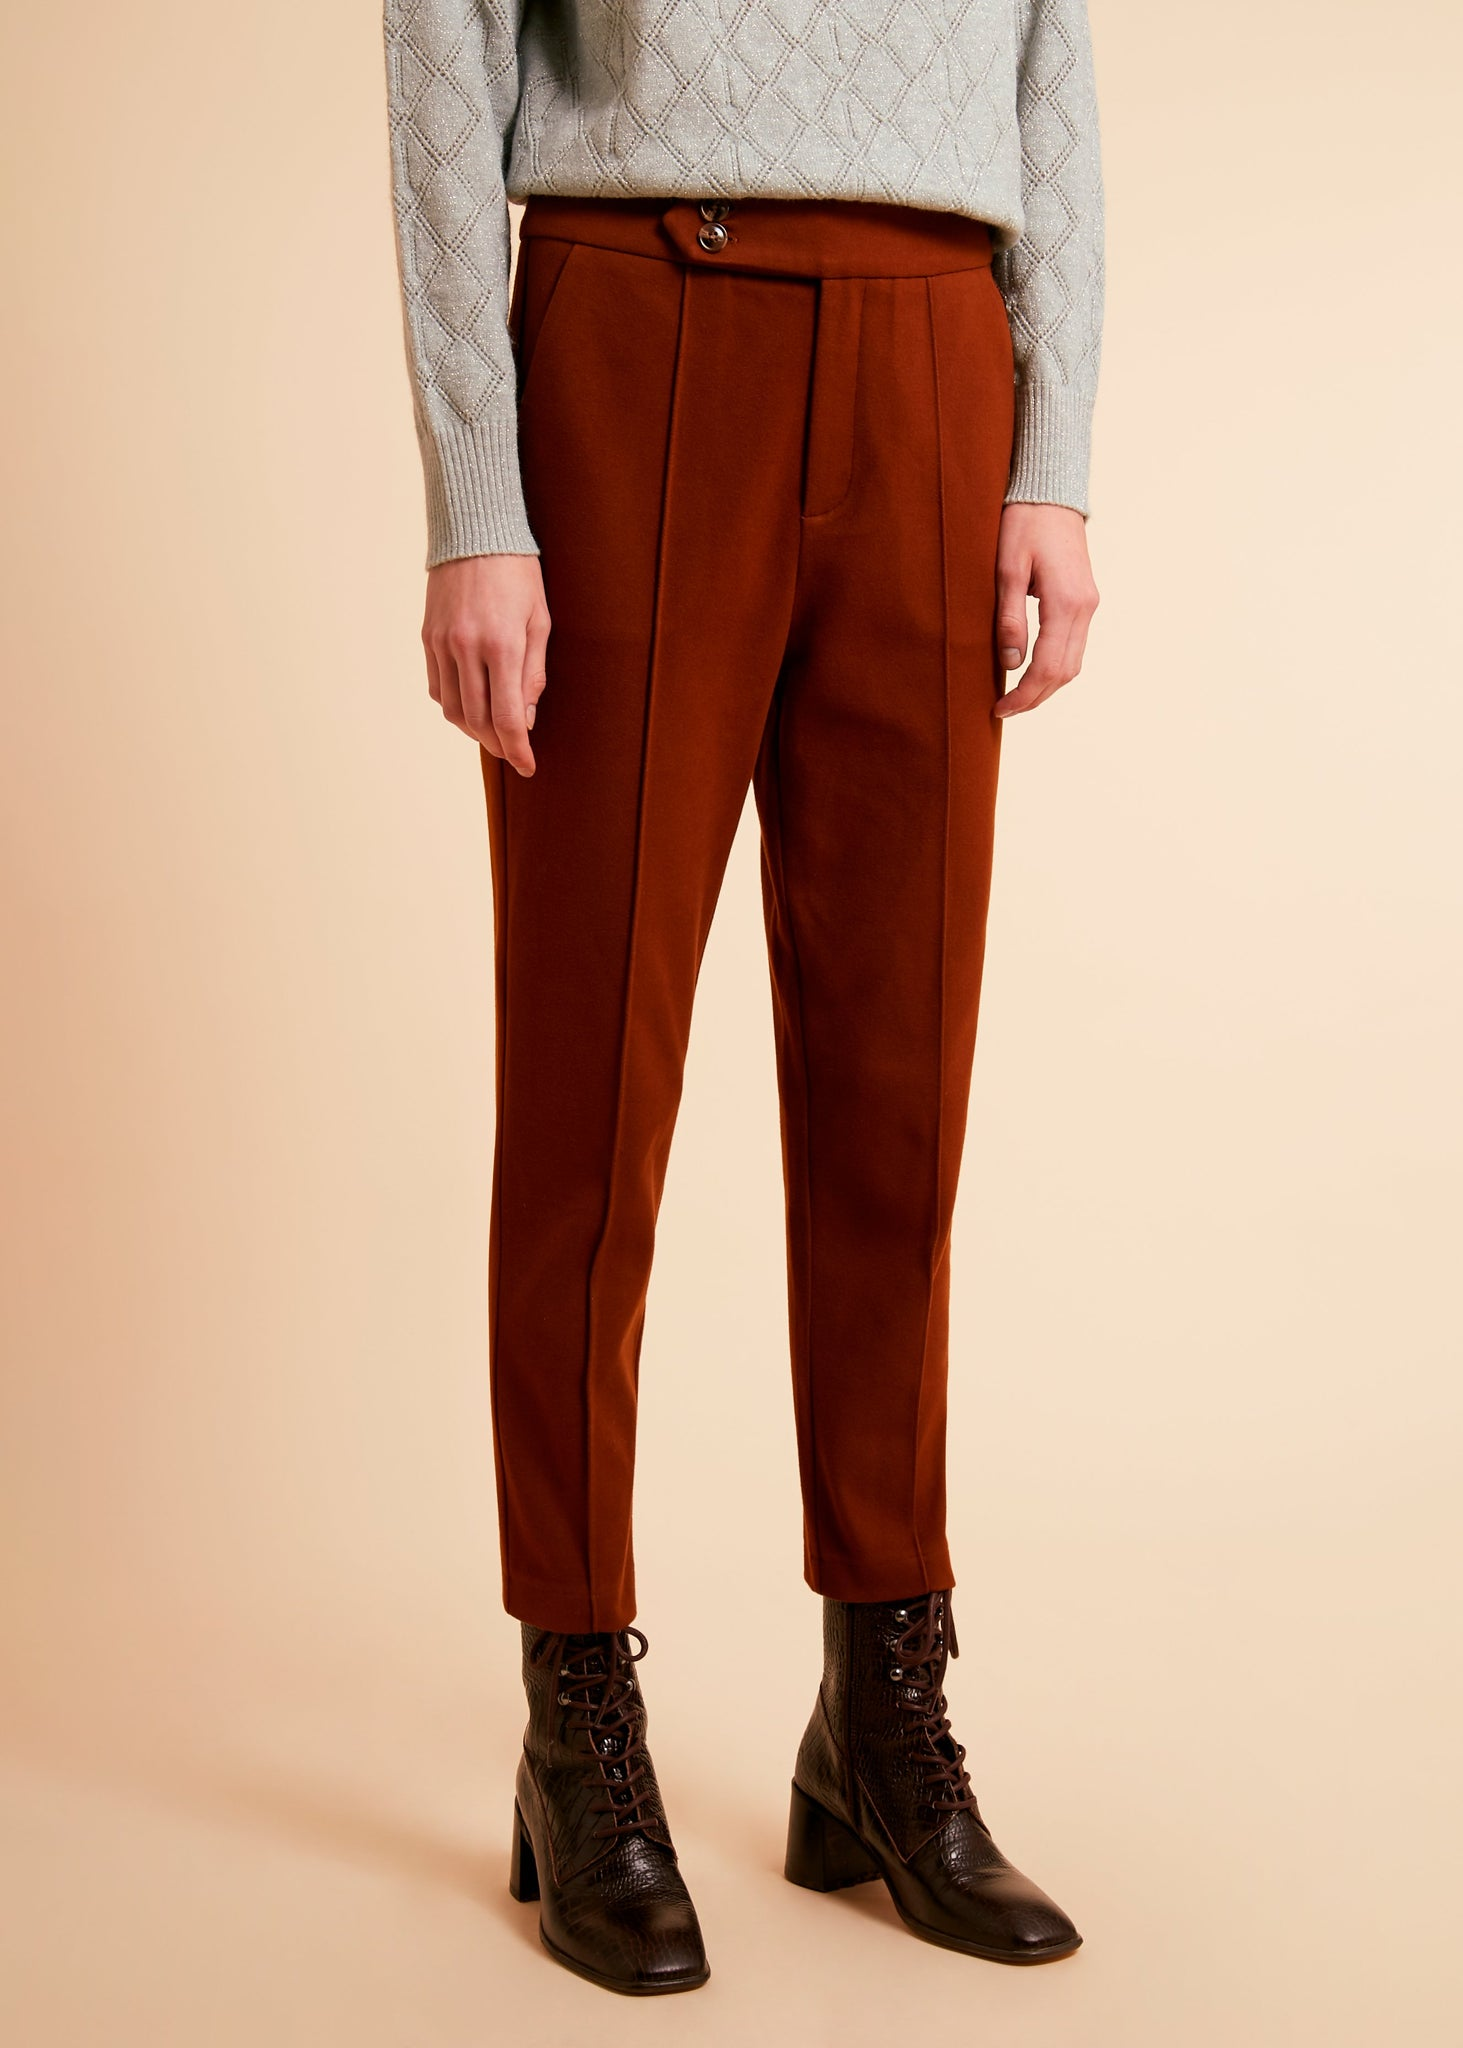 Frnch F11115 Pasquina pants marron